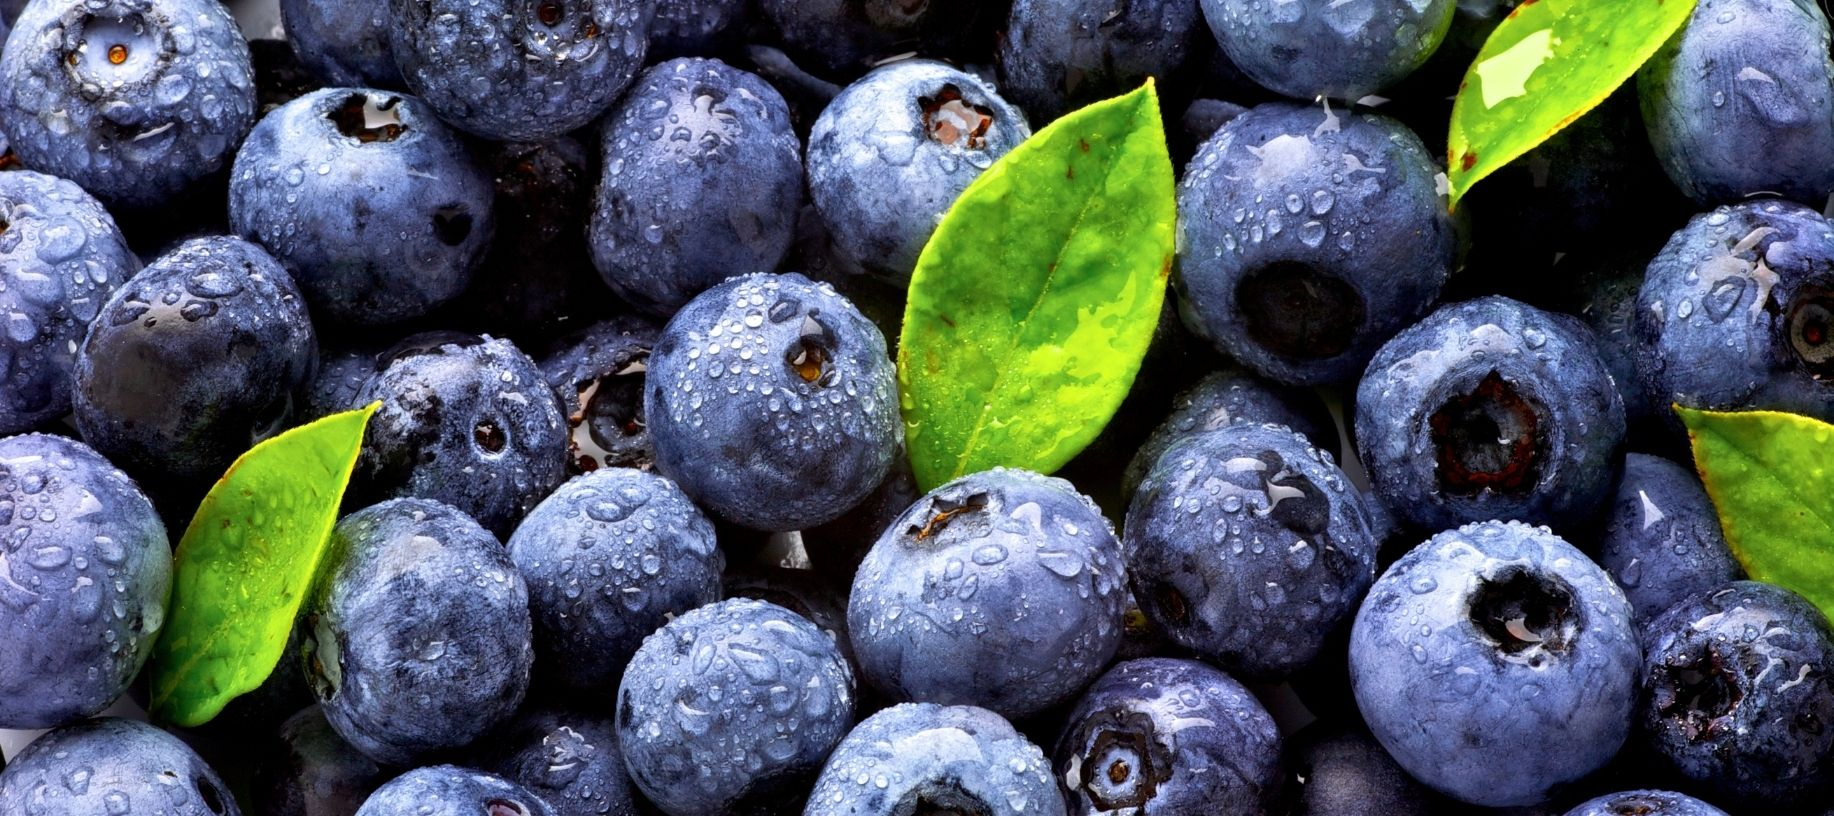 Plum, juice blueberries with bright green leaves